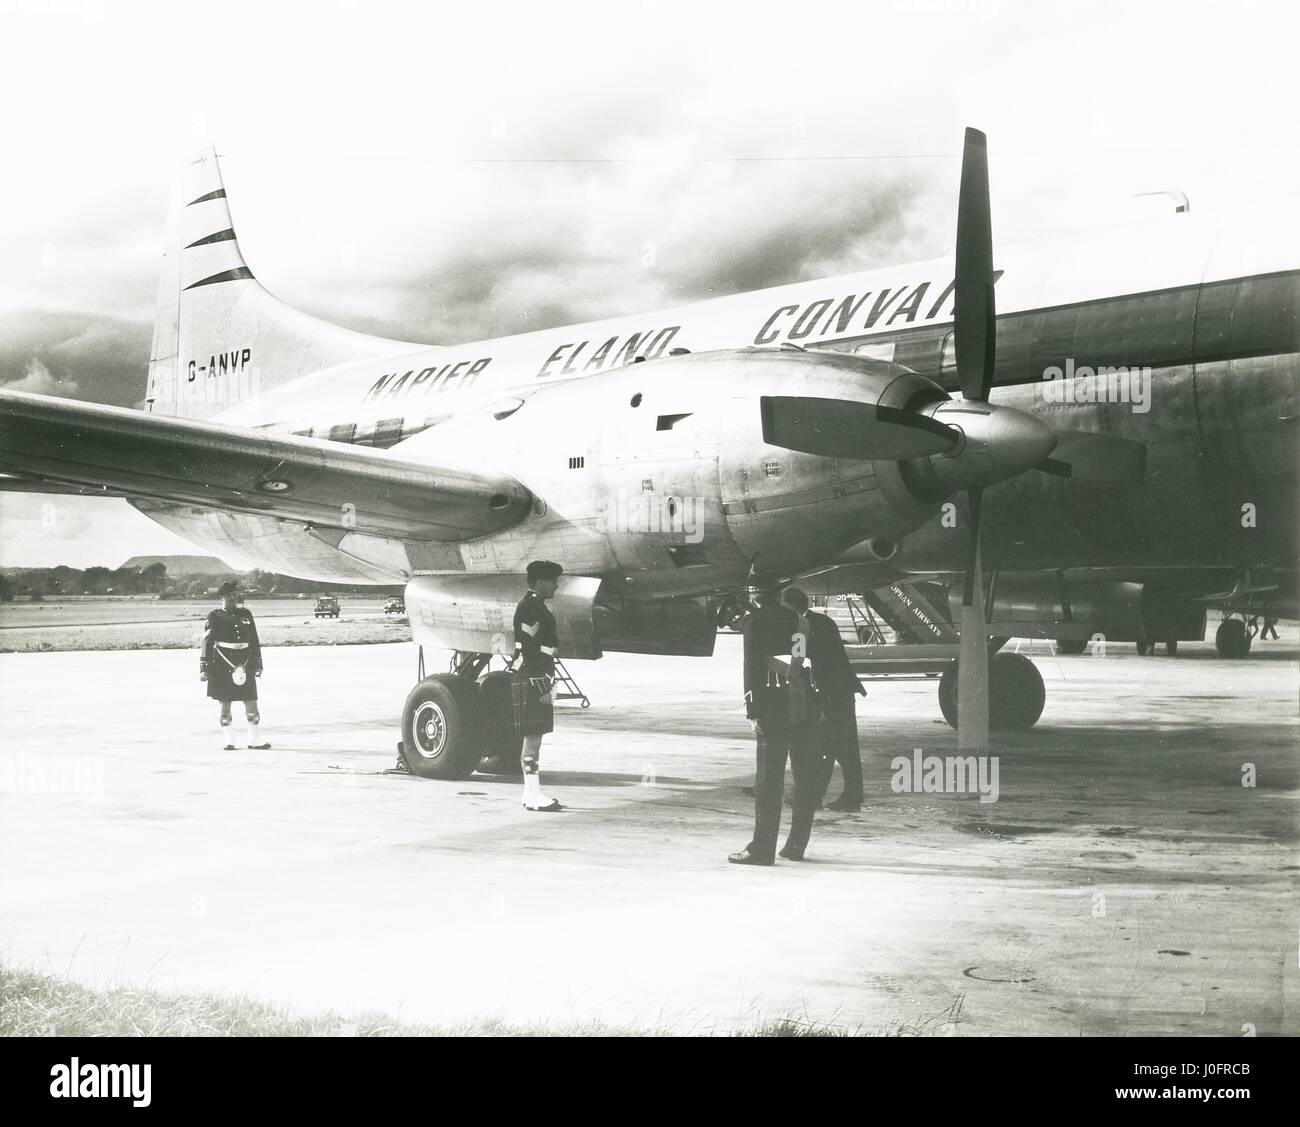 Napier Eland Airliner G ANVP converted with turboprop engines on runway with men in kilts - Stock Image